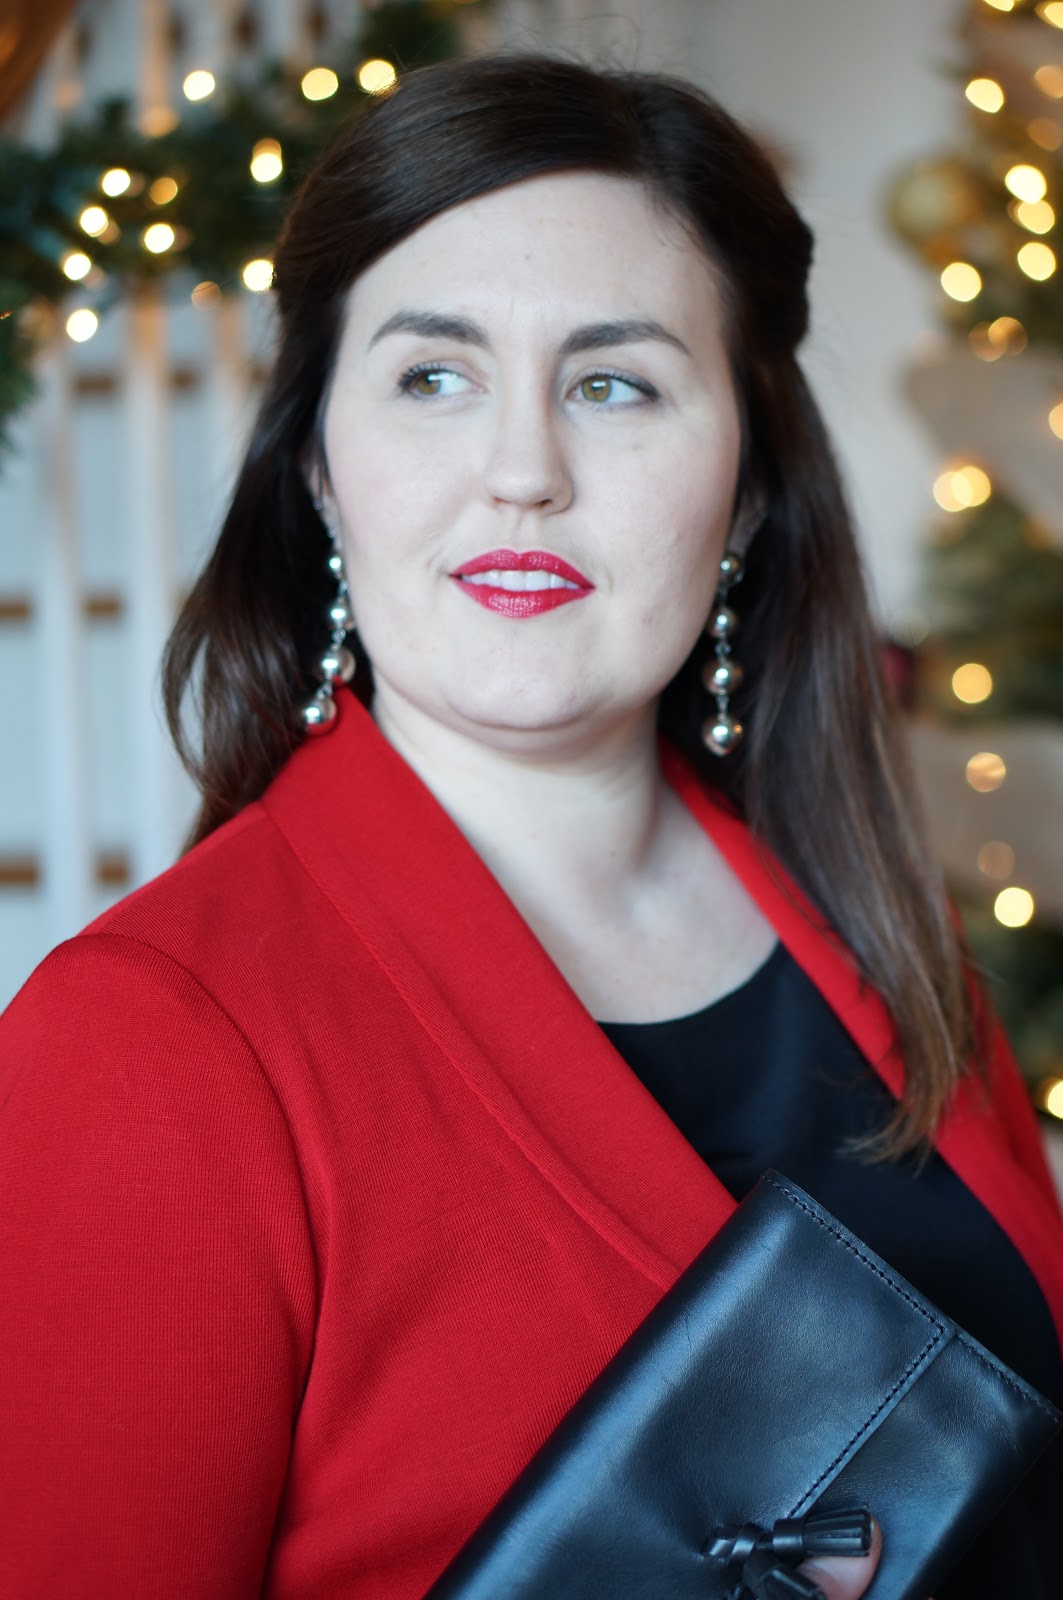 FALL STYLE | MISOOK HOLIDAY OUTFIT by North Carolina style blogger Rebecca Lately